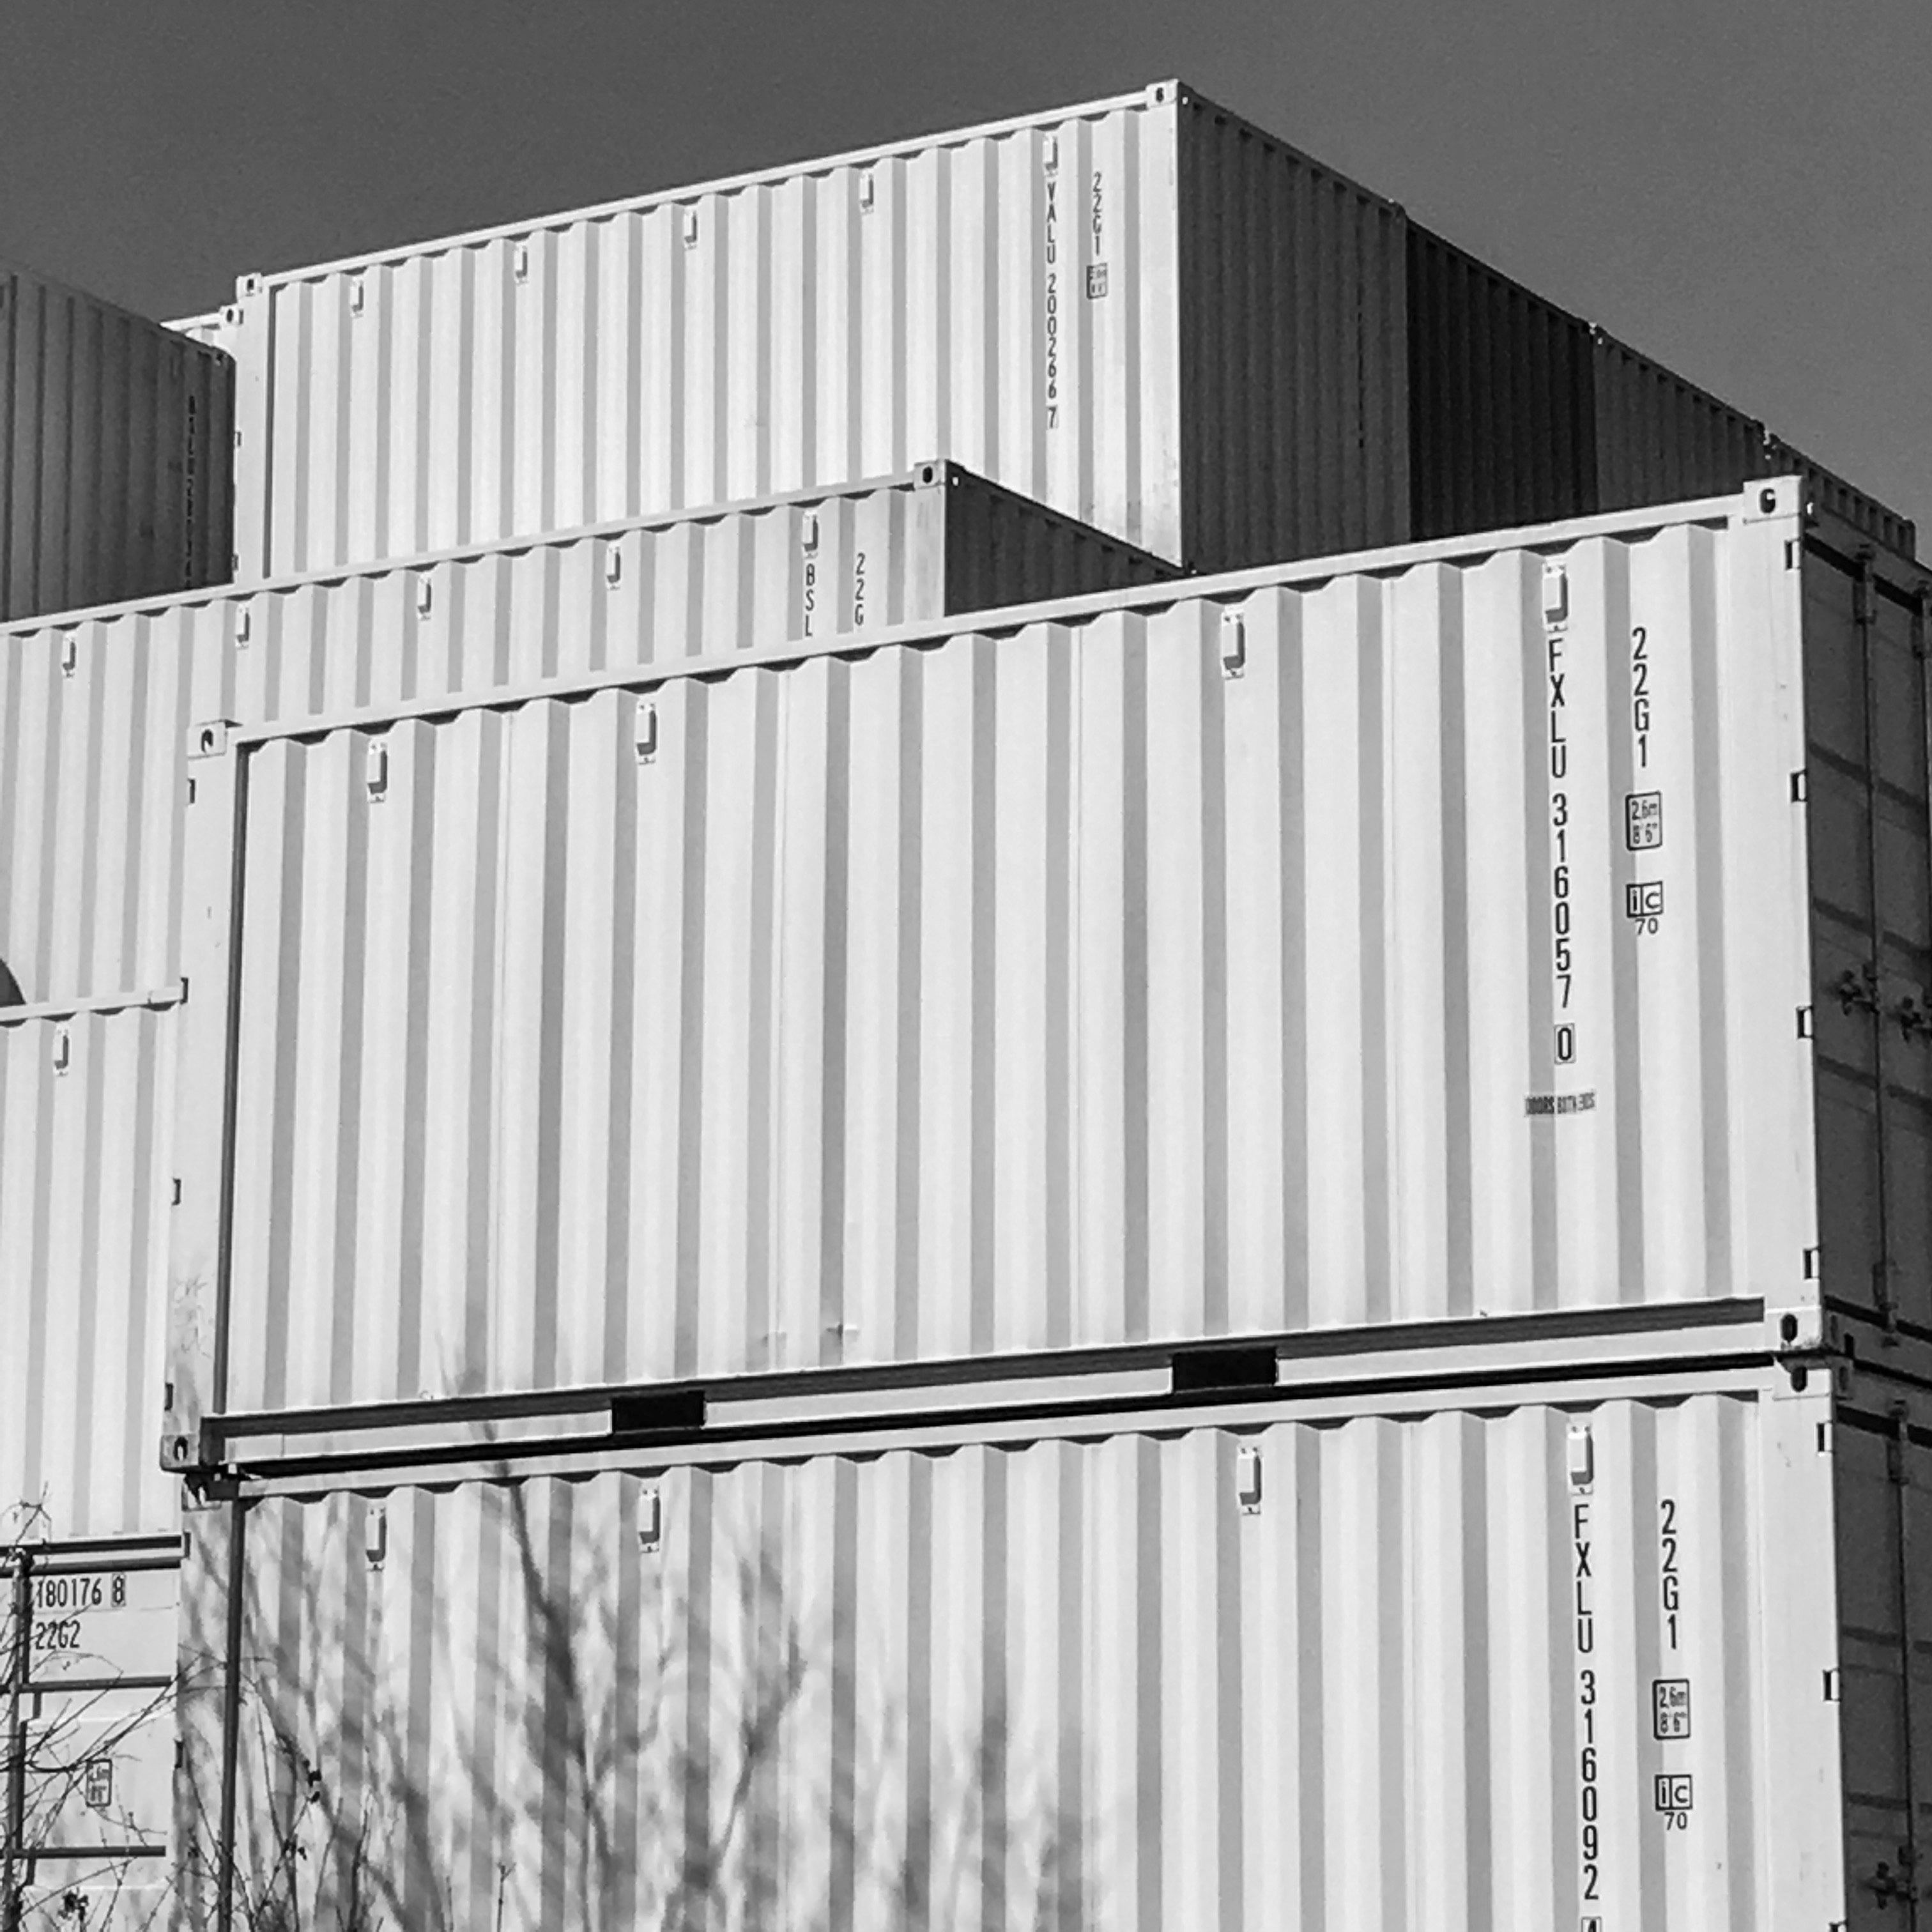 Giant Containers: Shipping